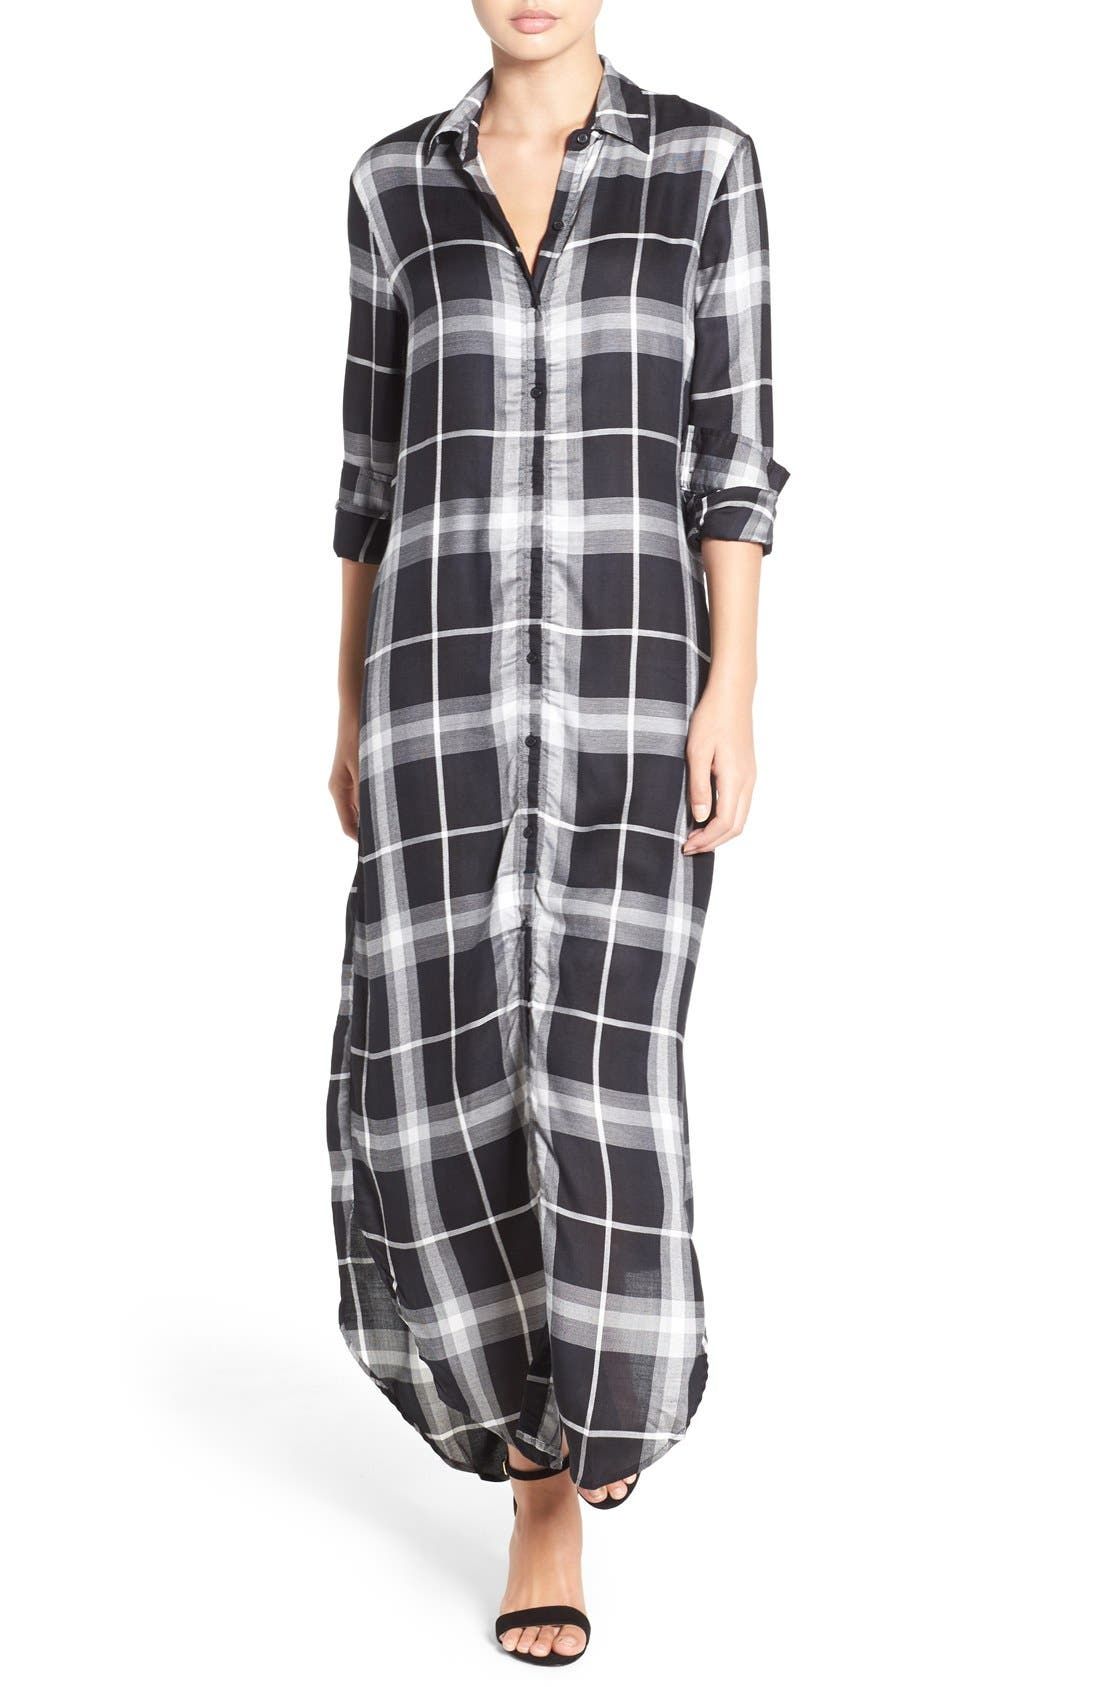 Alternate Image 1 Selected - BB Dakota 'Coley' Plaid Maxi Shirtdress